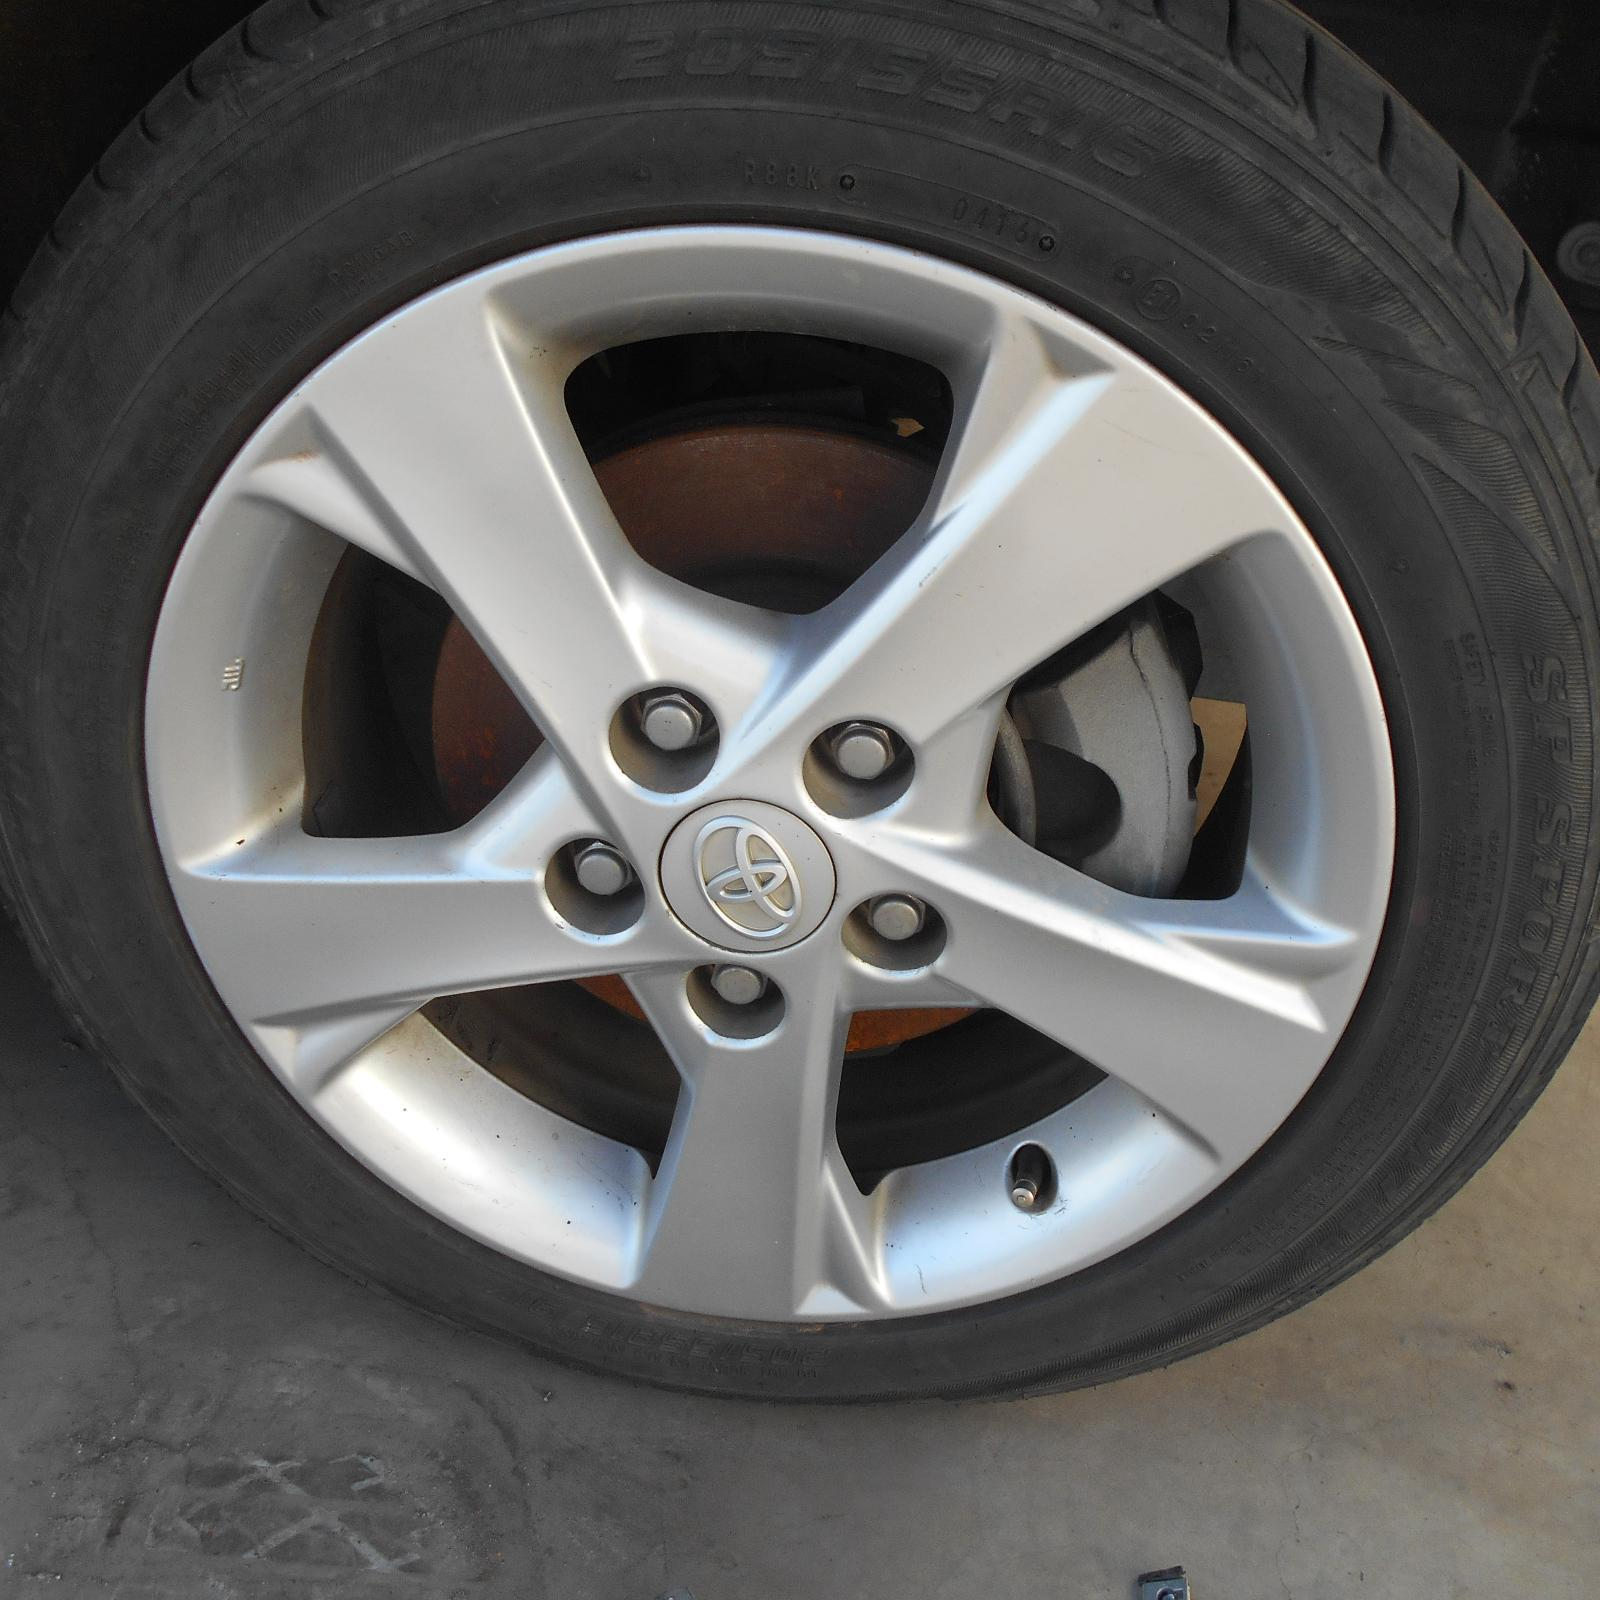 TOYOTA COROLLA, Wheel Mag, FACTORY, 16X6.5IN, ZRE152/153R, 5 BACK SPLIT STYLE, 03/07-10/13